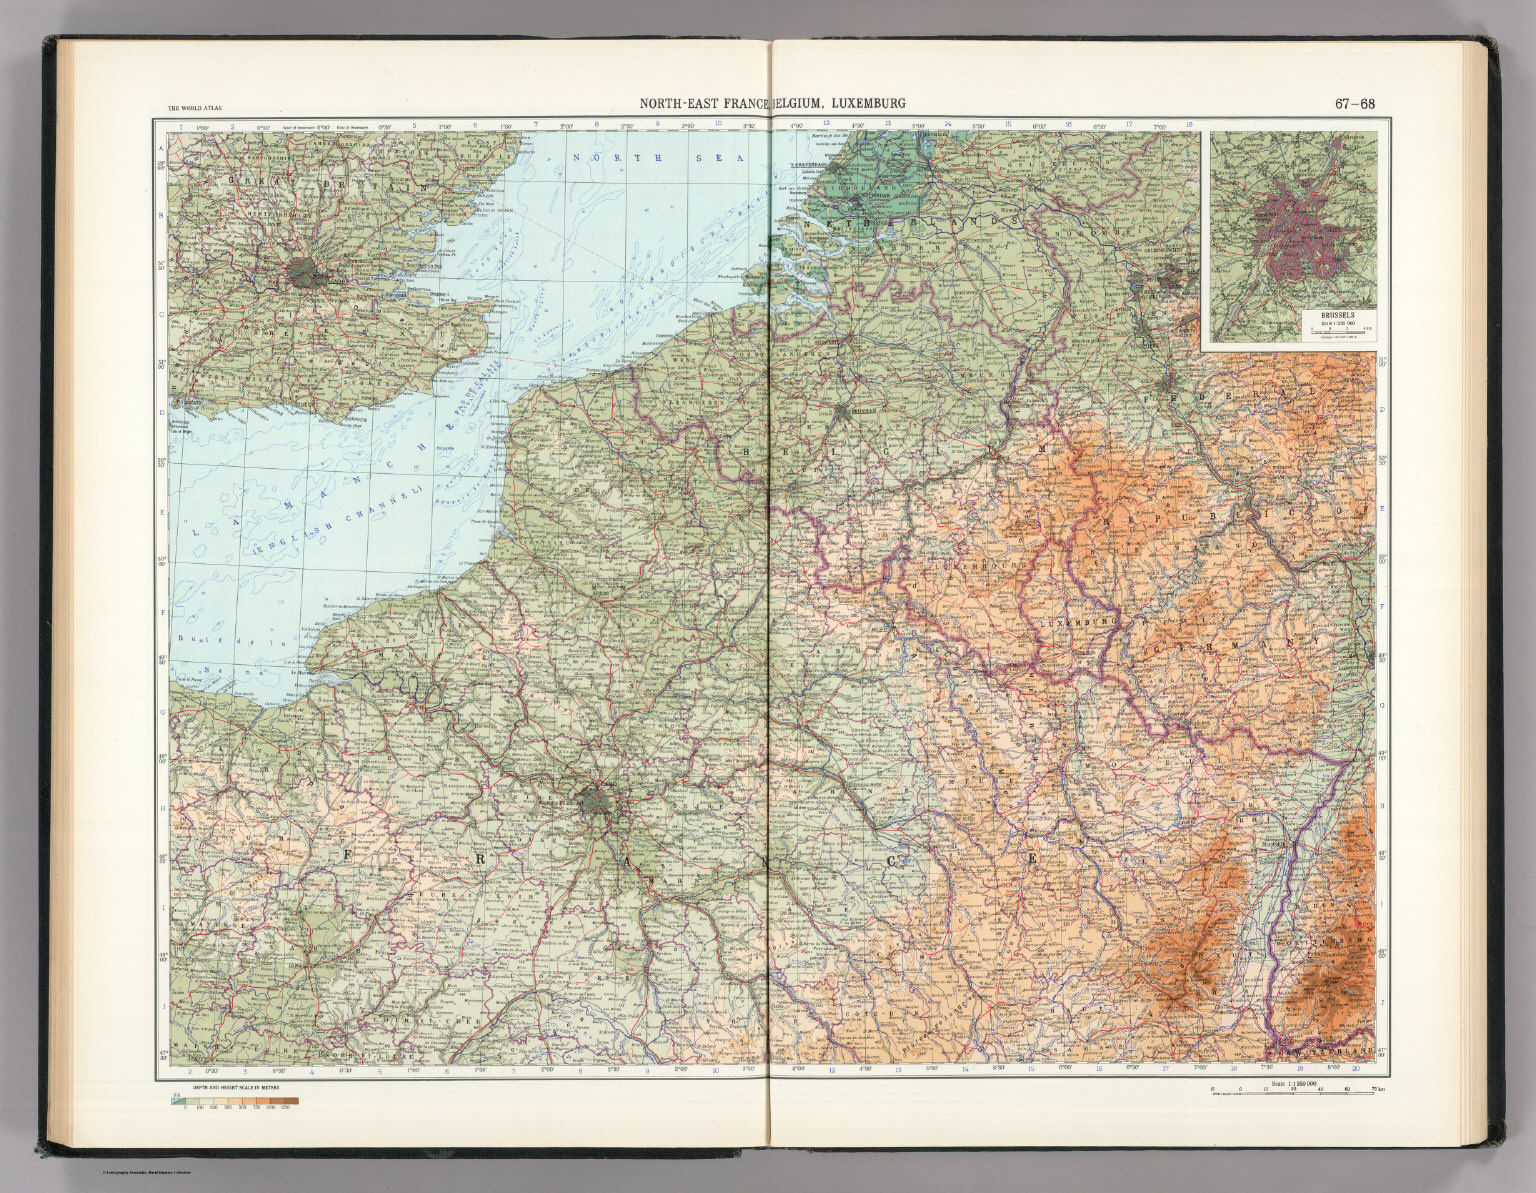 67 68 north east france belgium luxemburg the world atlas north east france belgium luxemburg the world atlas gumiabroncs